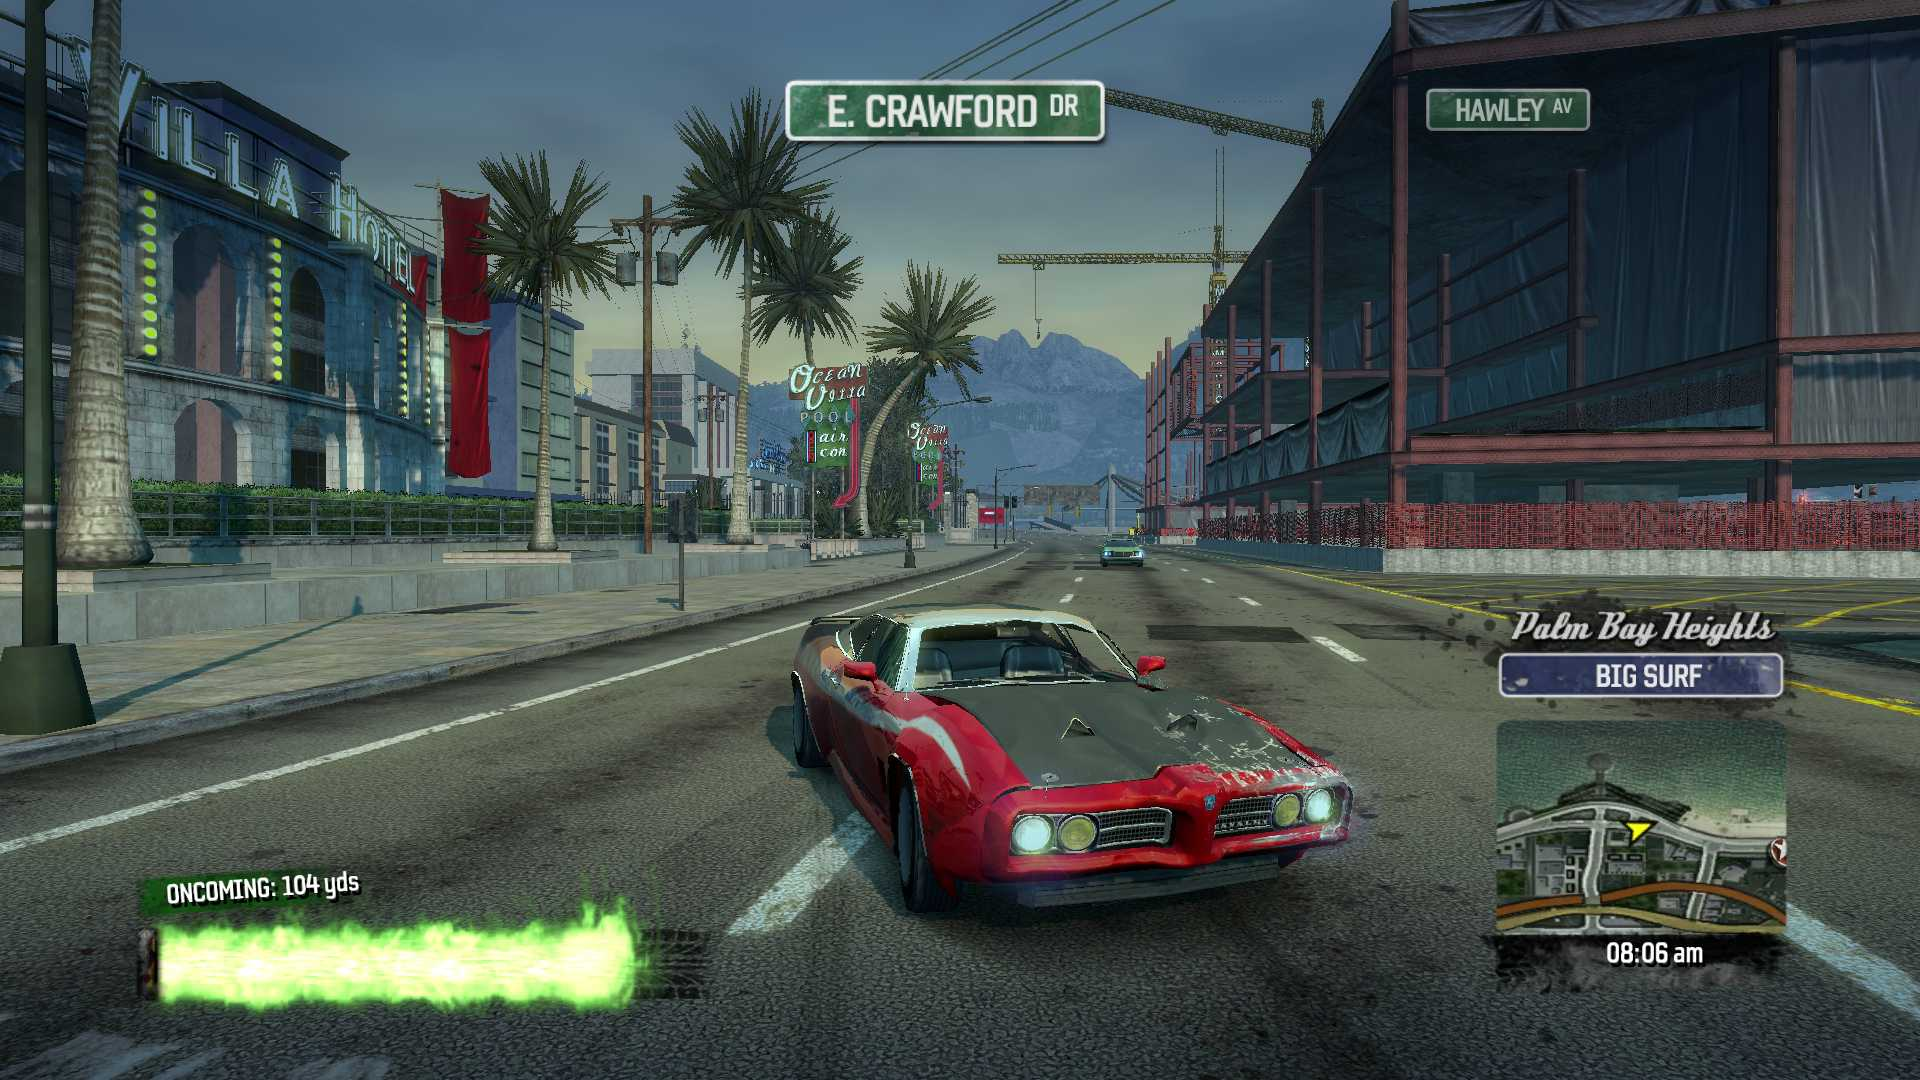 Burnout paradise RAR file highly compressed full game only in 582 MB